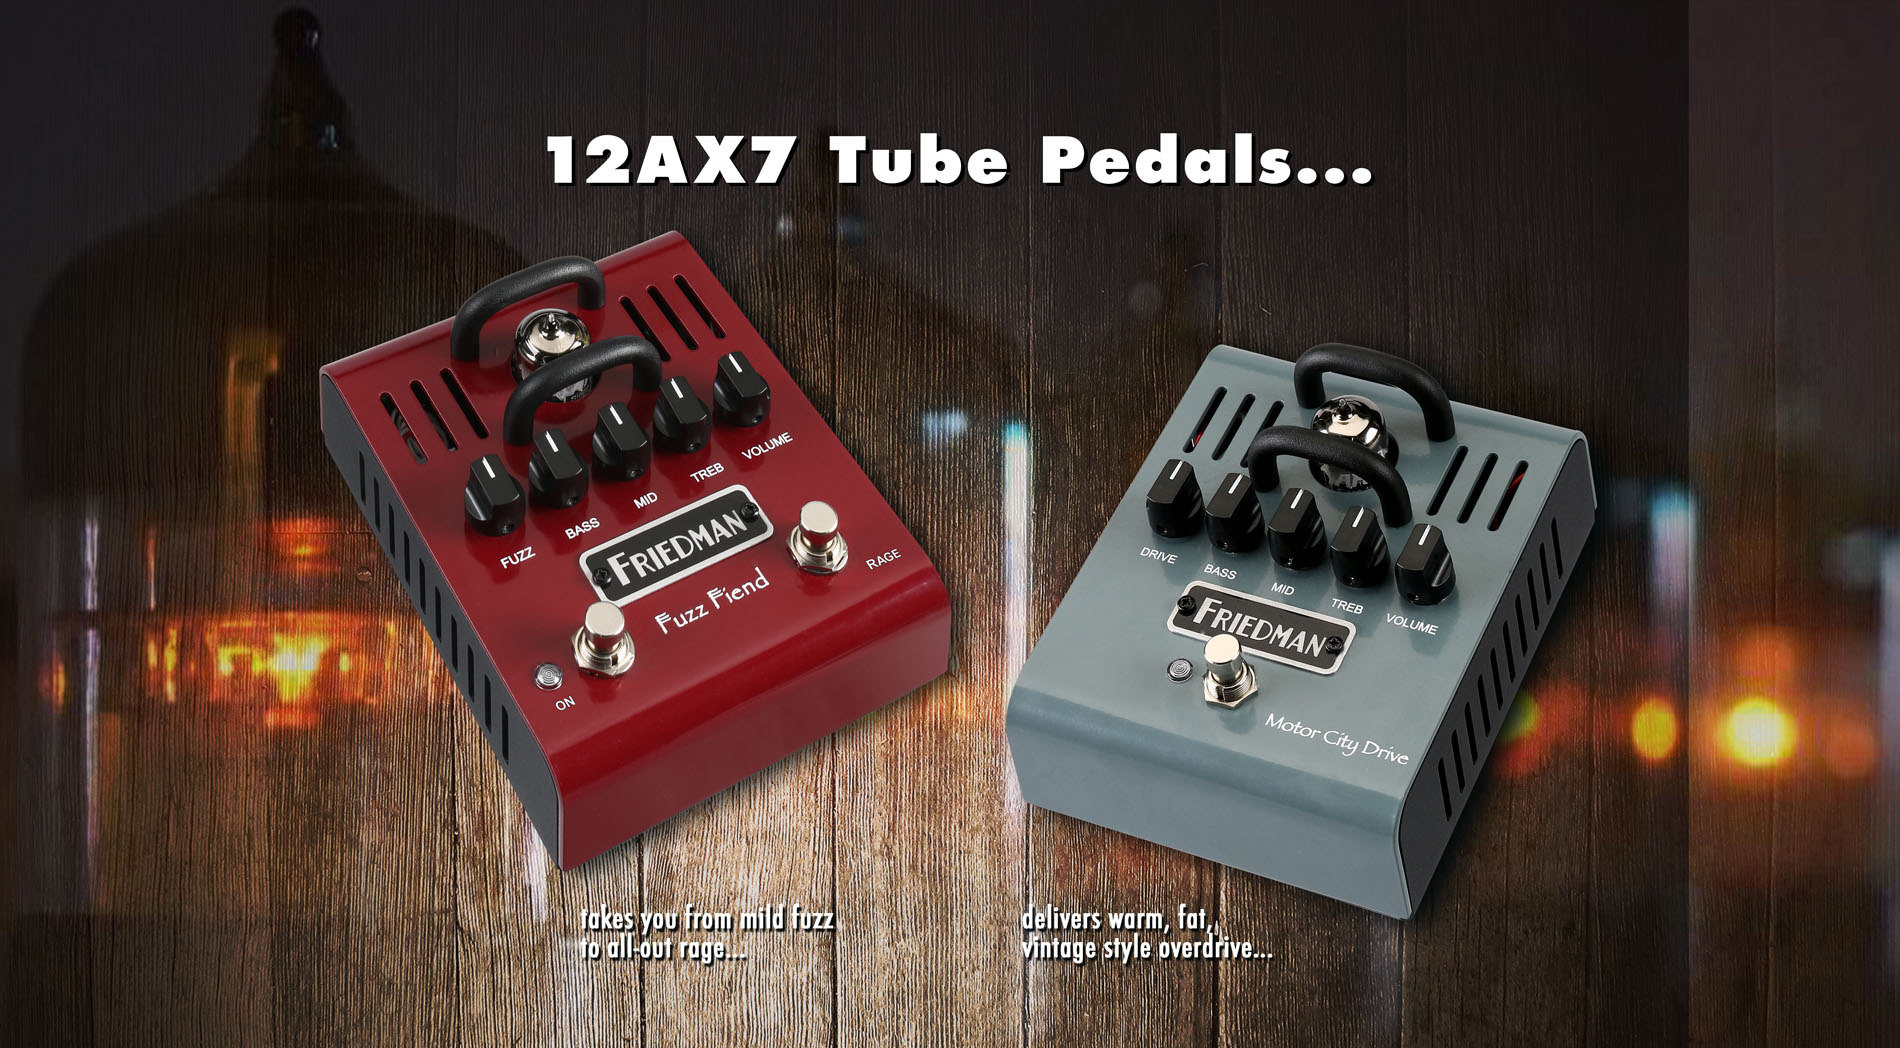 FA_TubePedals_ImageSlider9_3-28-17